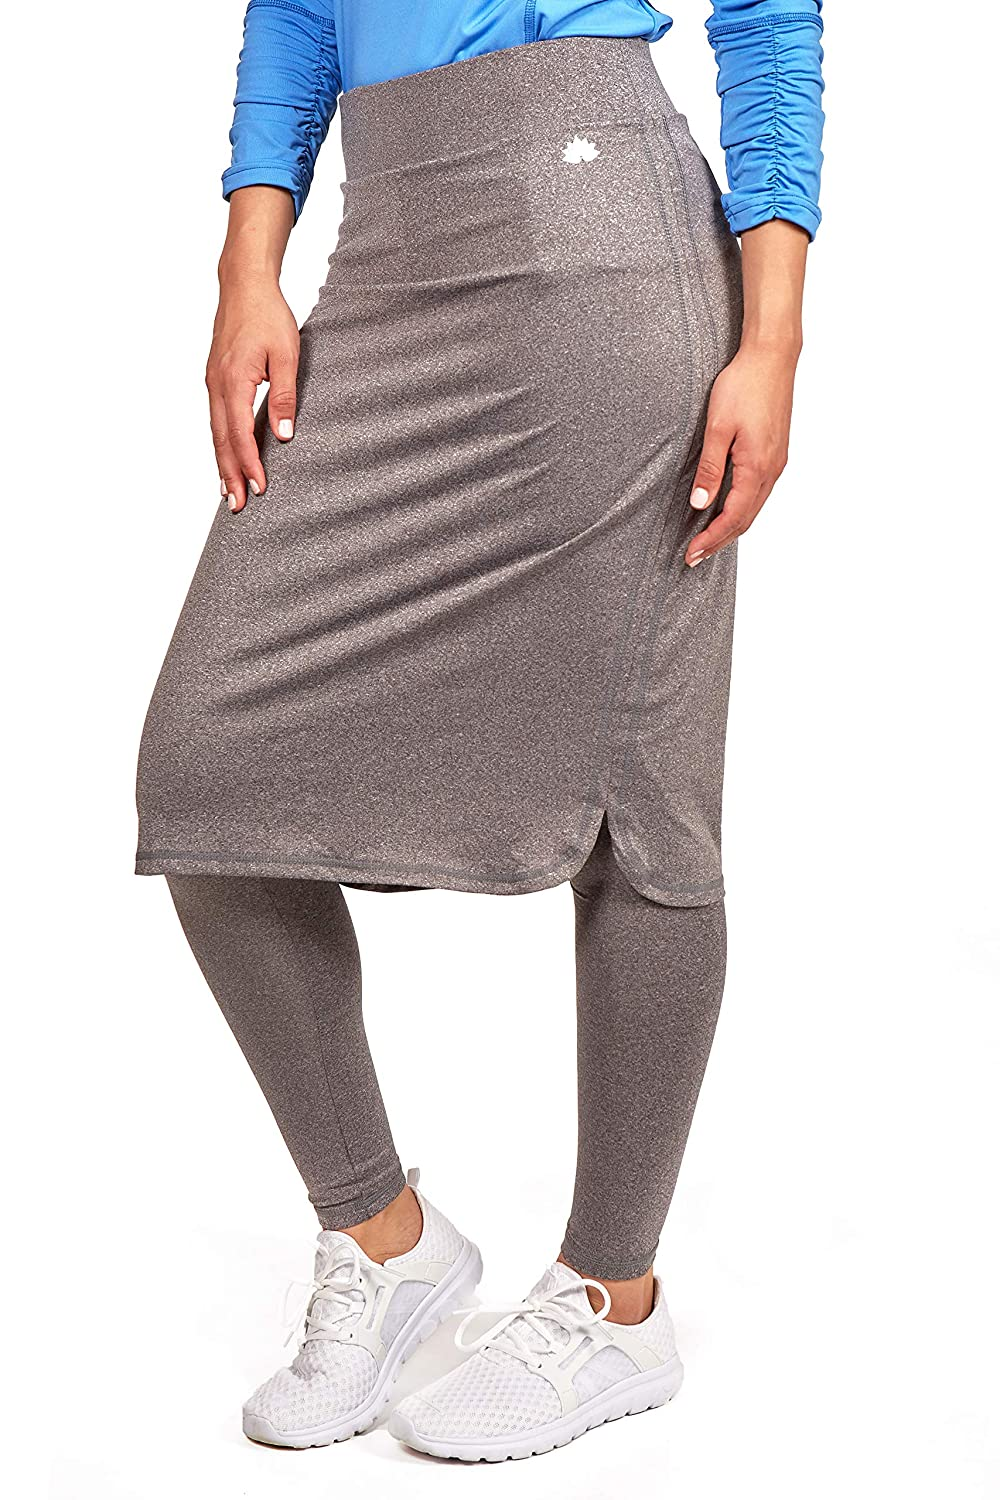 88eacbb8f Amazon.com: Snoga Modesty Athletic Wear - Yoga Pants w/Attached Skirt:  Clothing